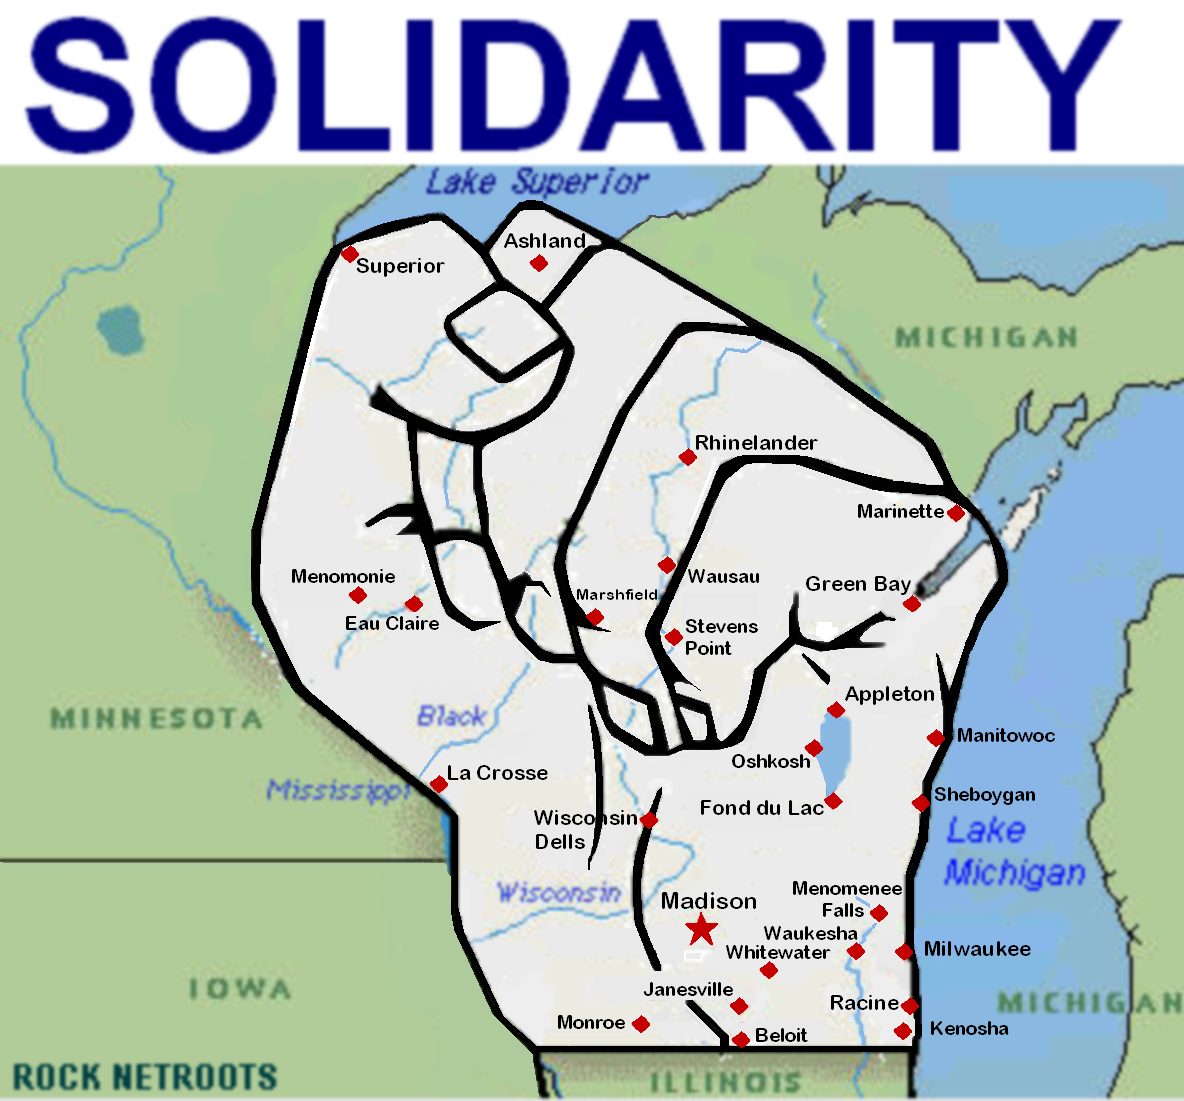 Wisconsin = solidarity